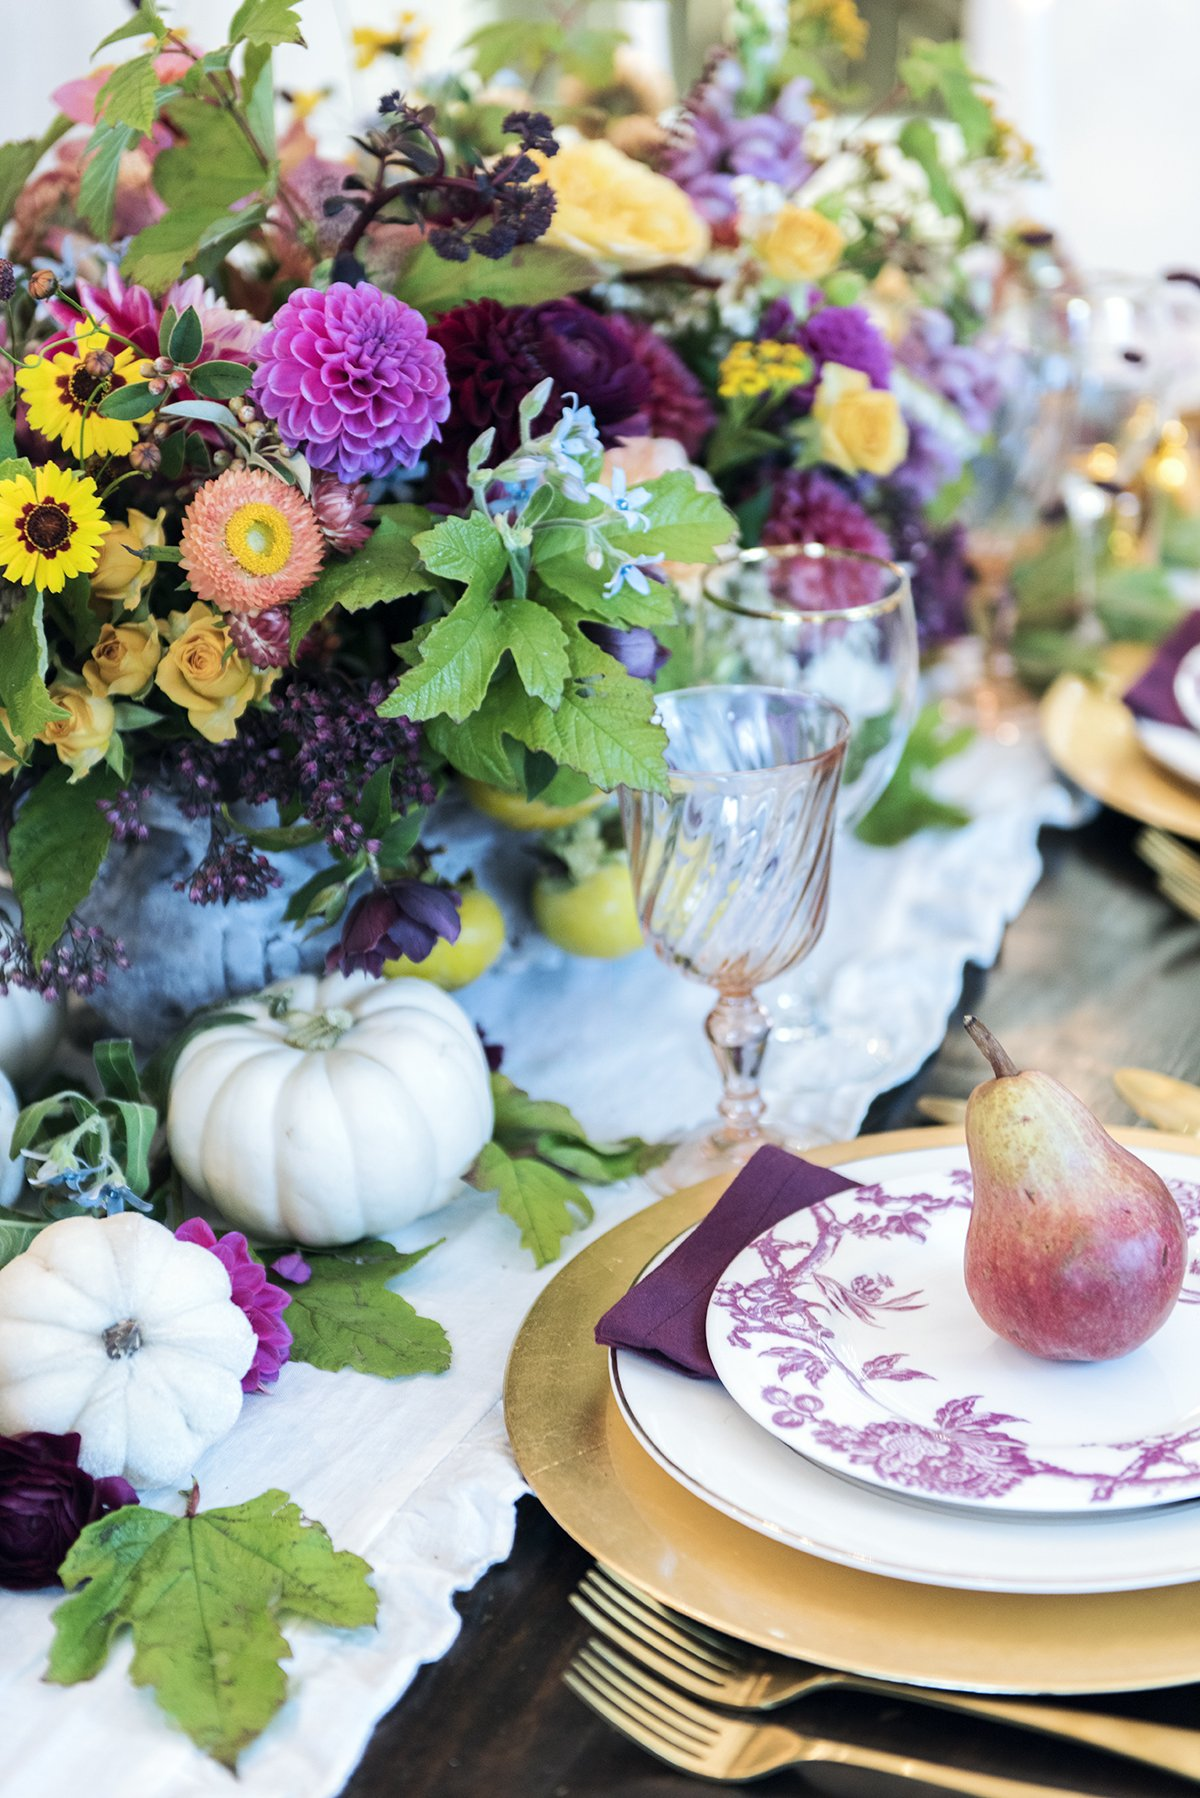 Fall table setting using jewel toned flowers and burgundy place settings